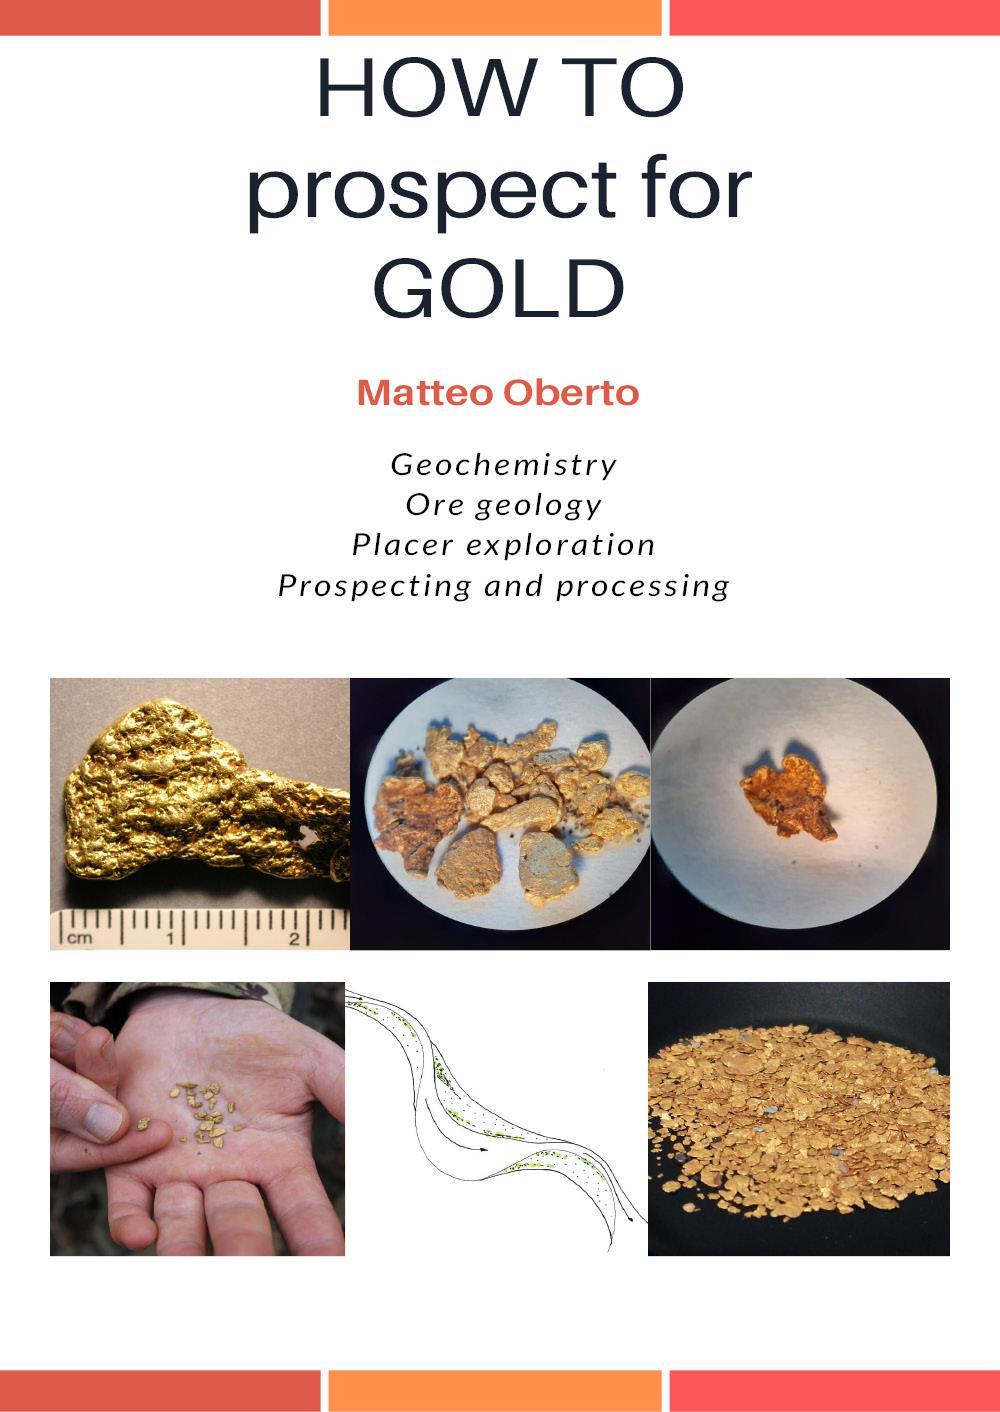 How to prospect for GOLD